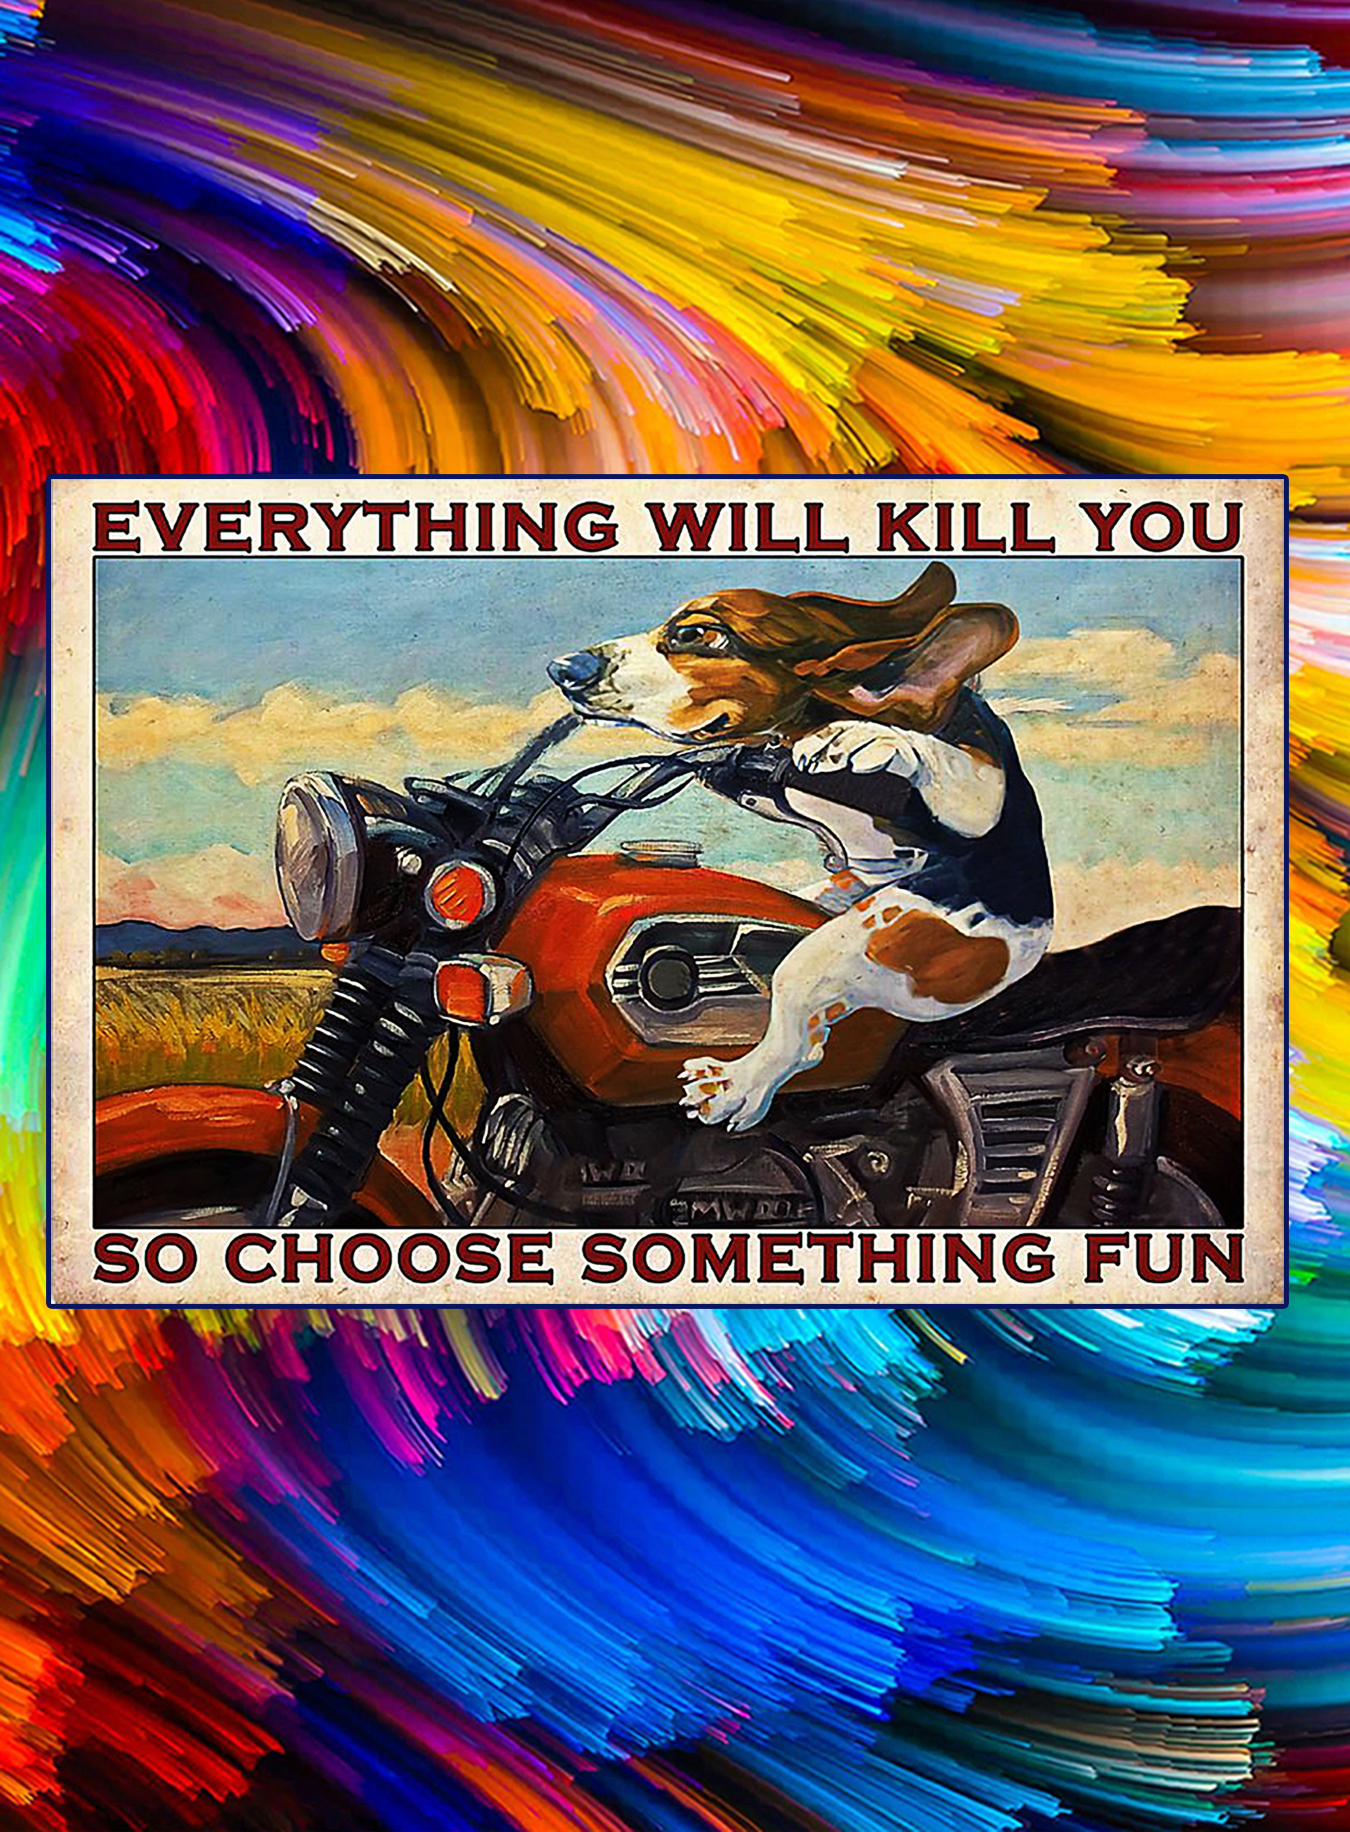 Motorcycle beagle everything will kill you so choose something fun poster - A3